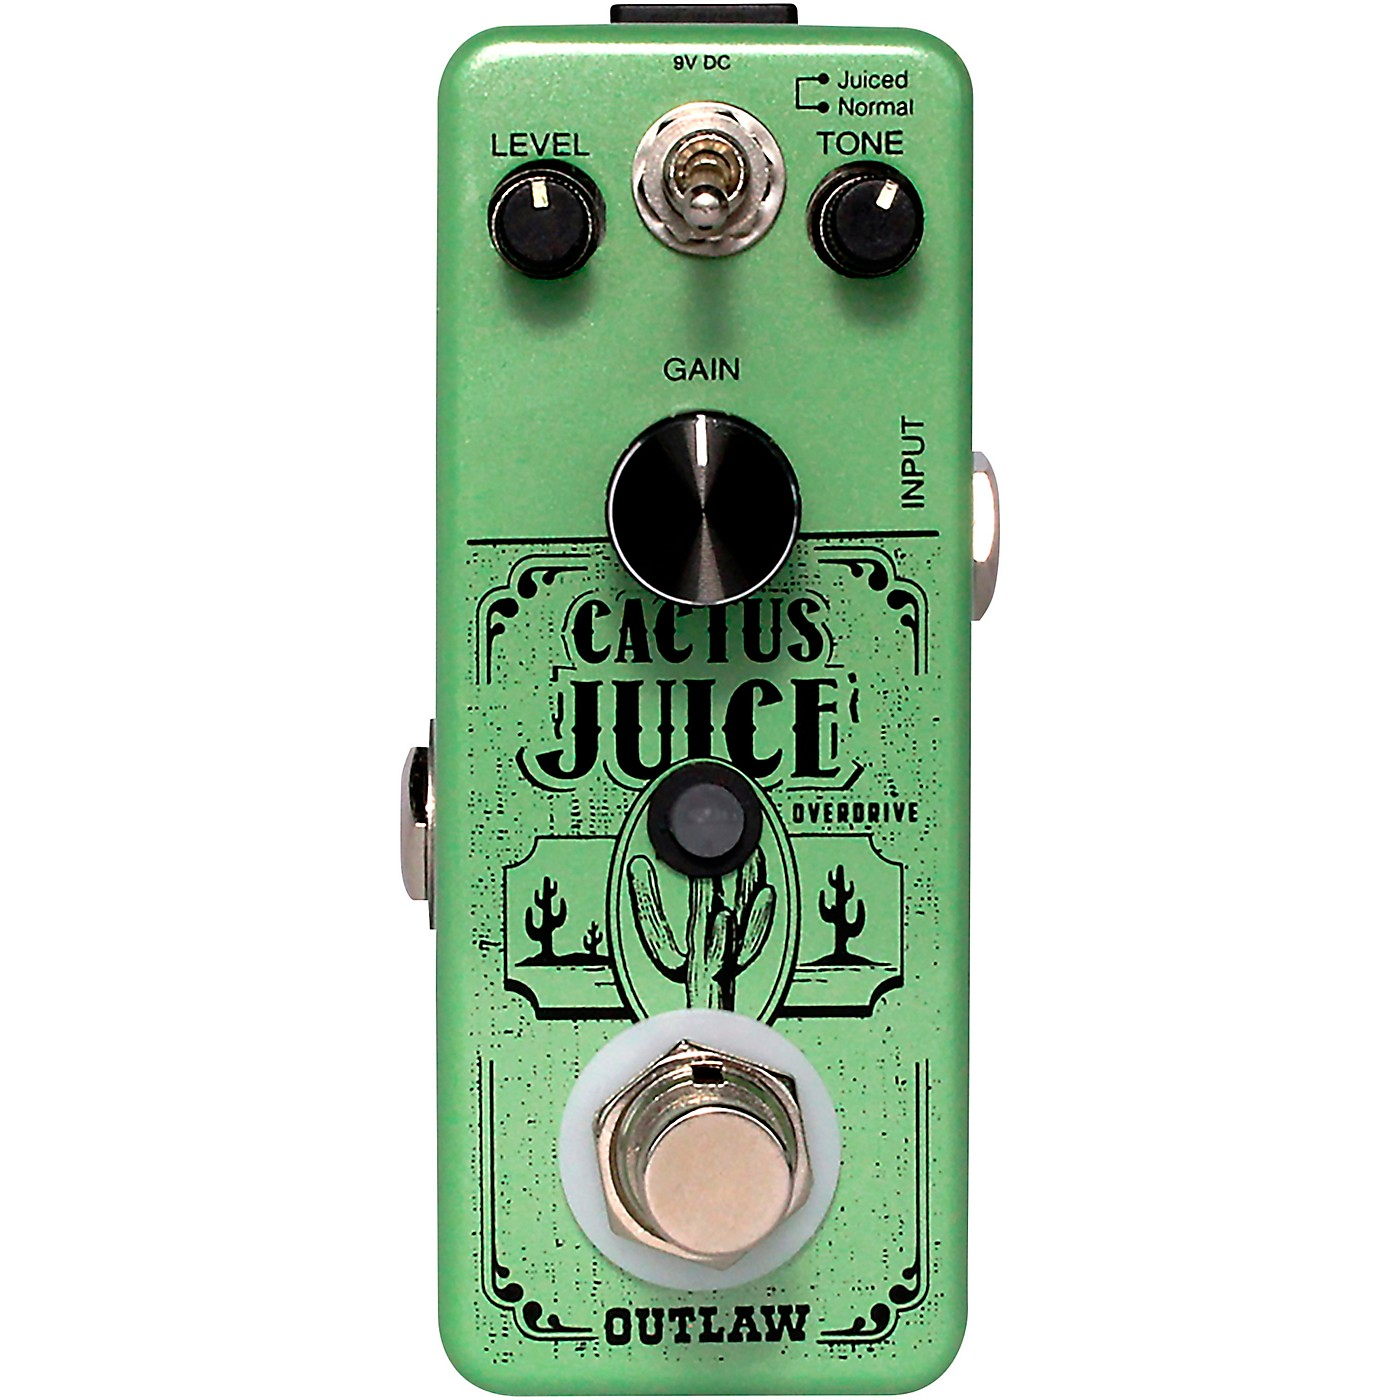 Outlaw Effects Cactus Juice Overdrive Effects Pedal thumbnail